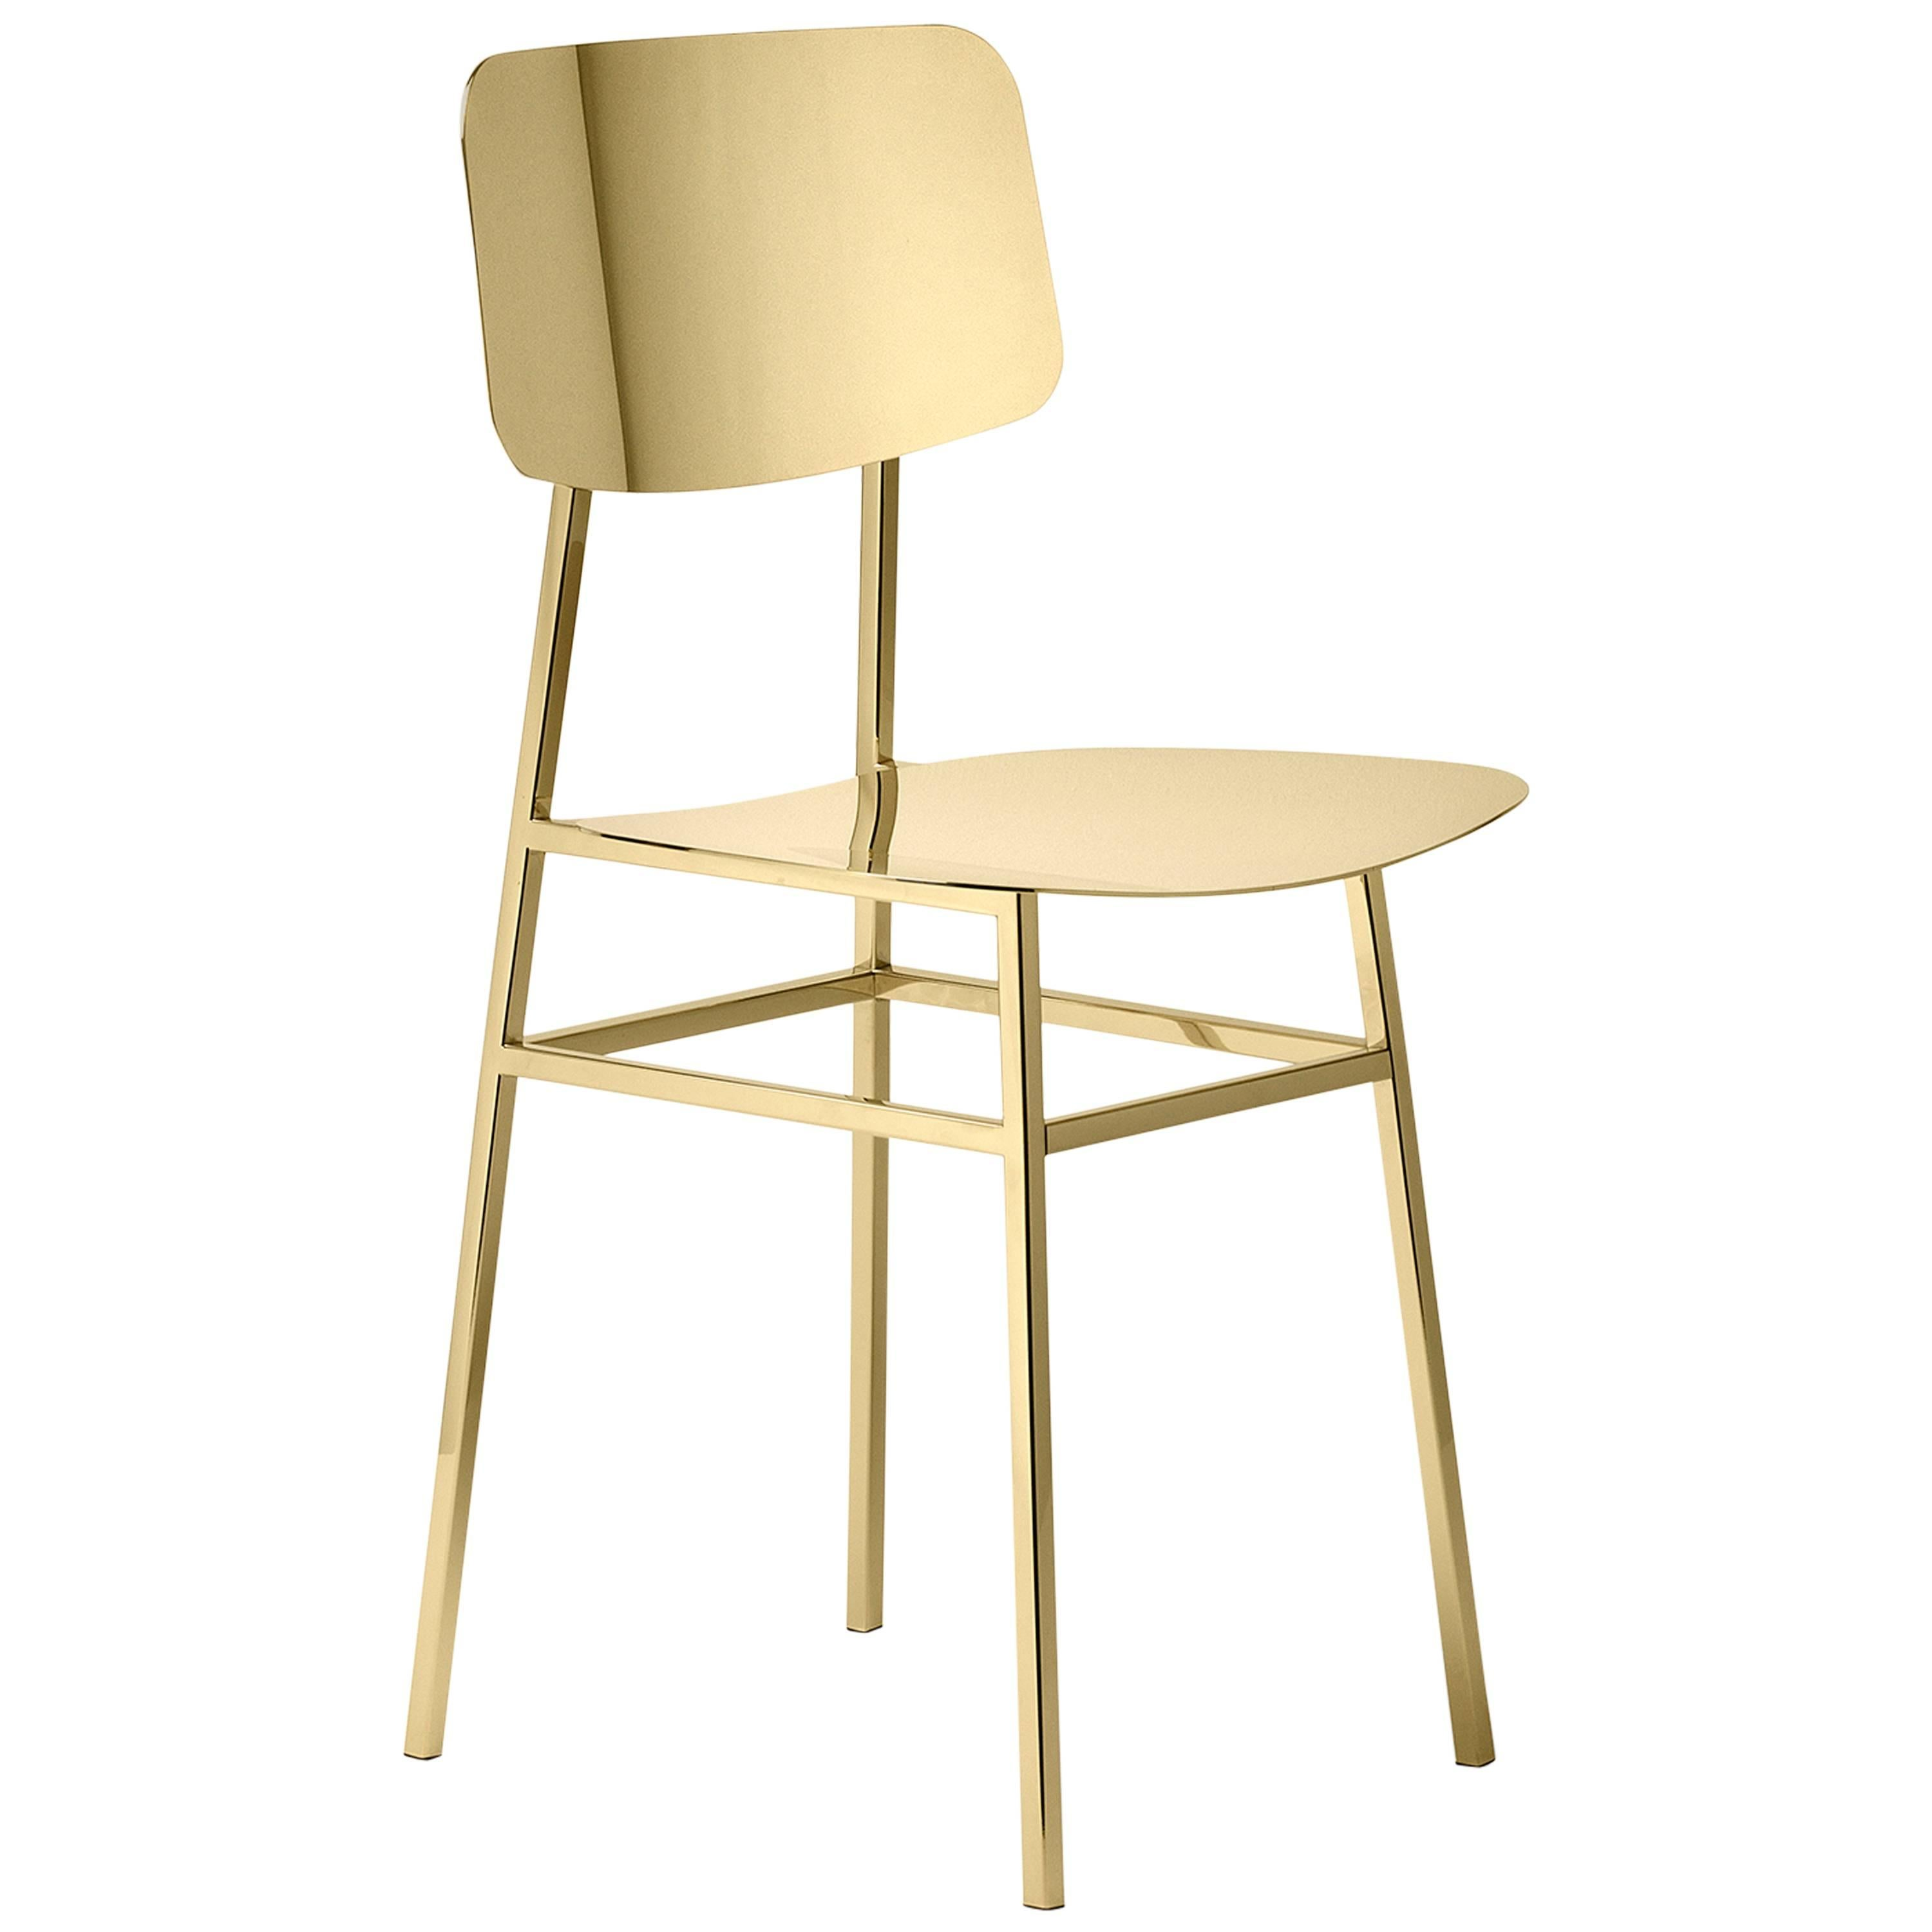 Miami Chair Designed by Nika Zupanc for Ghidini, 1961